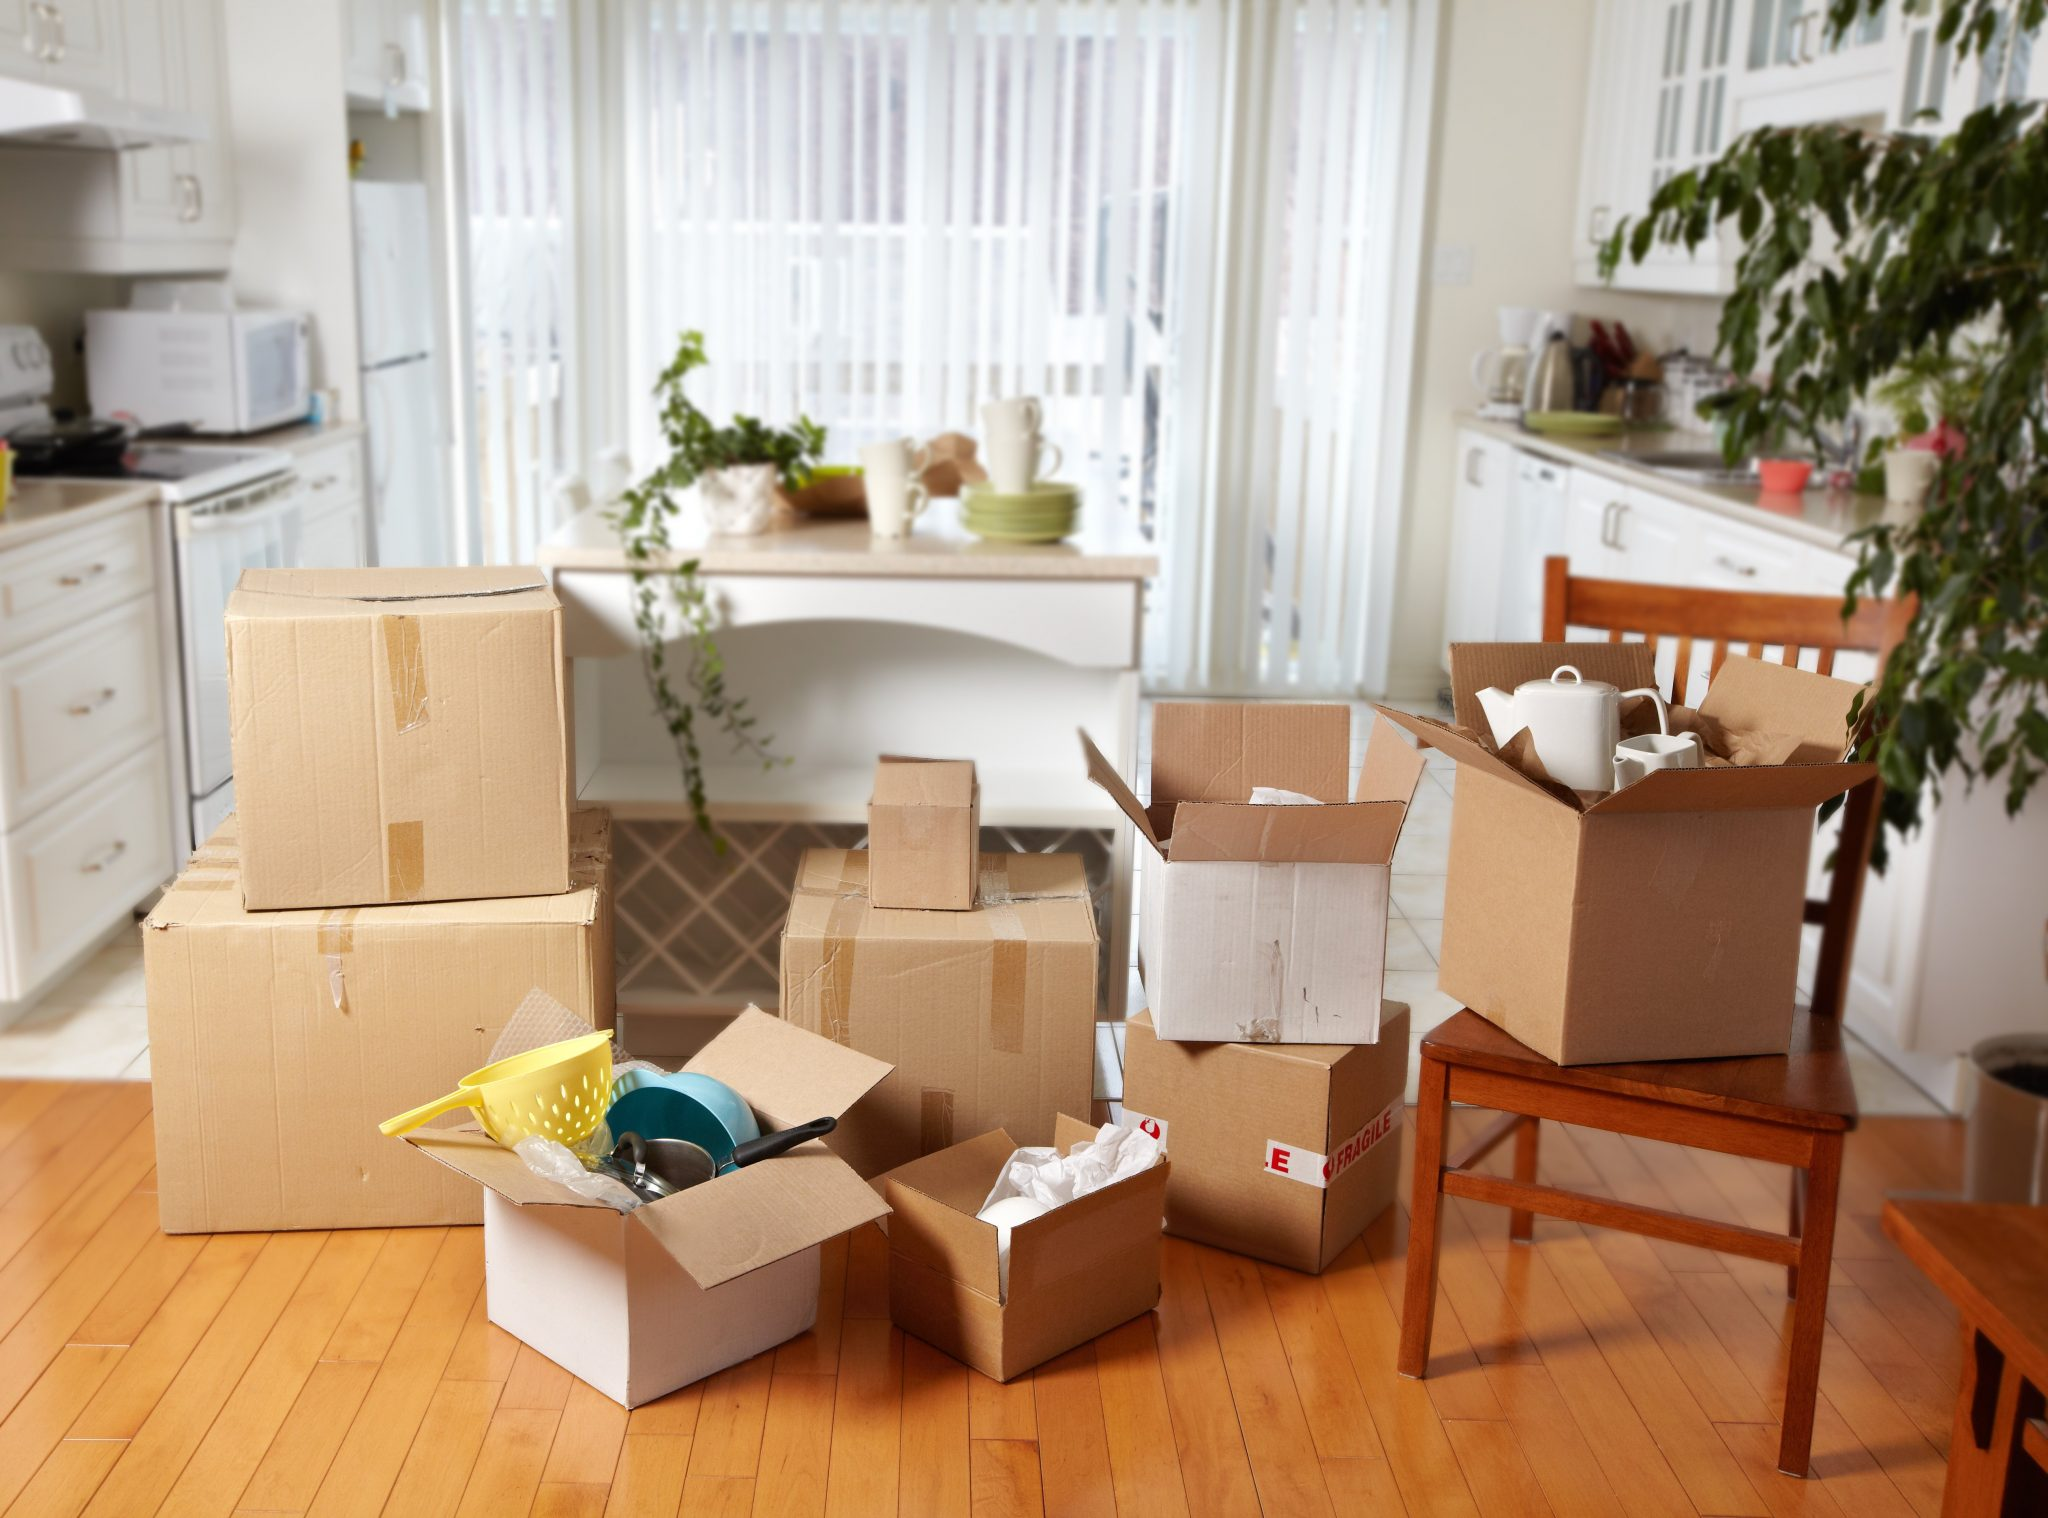 Pcs Tips Preparing For Your Military Move Jessica Lynn